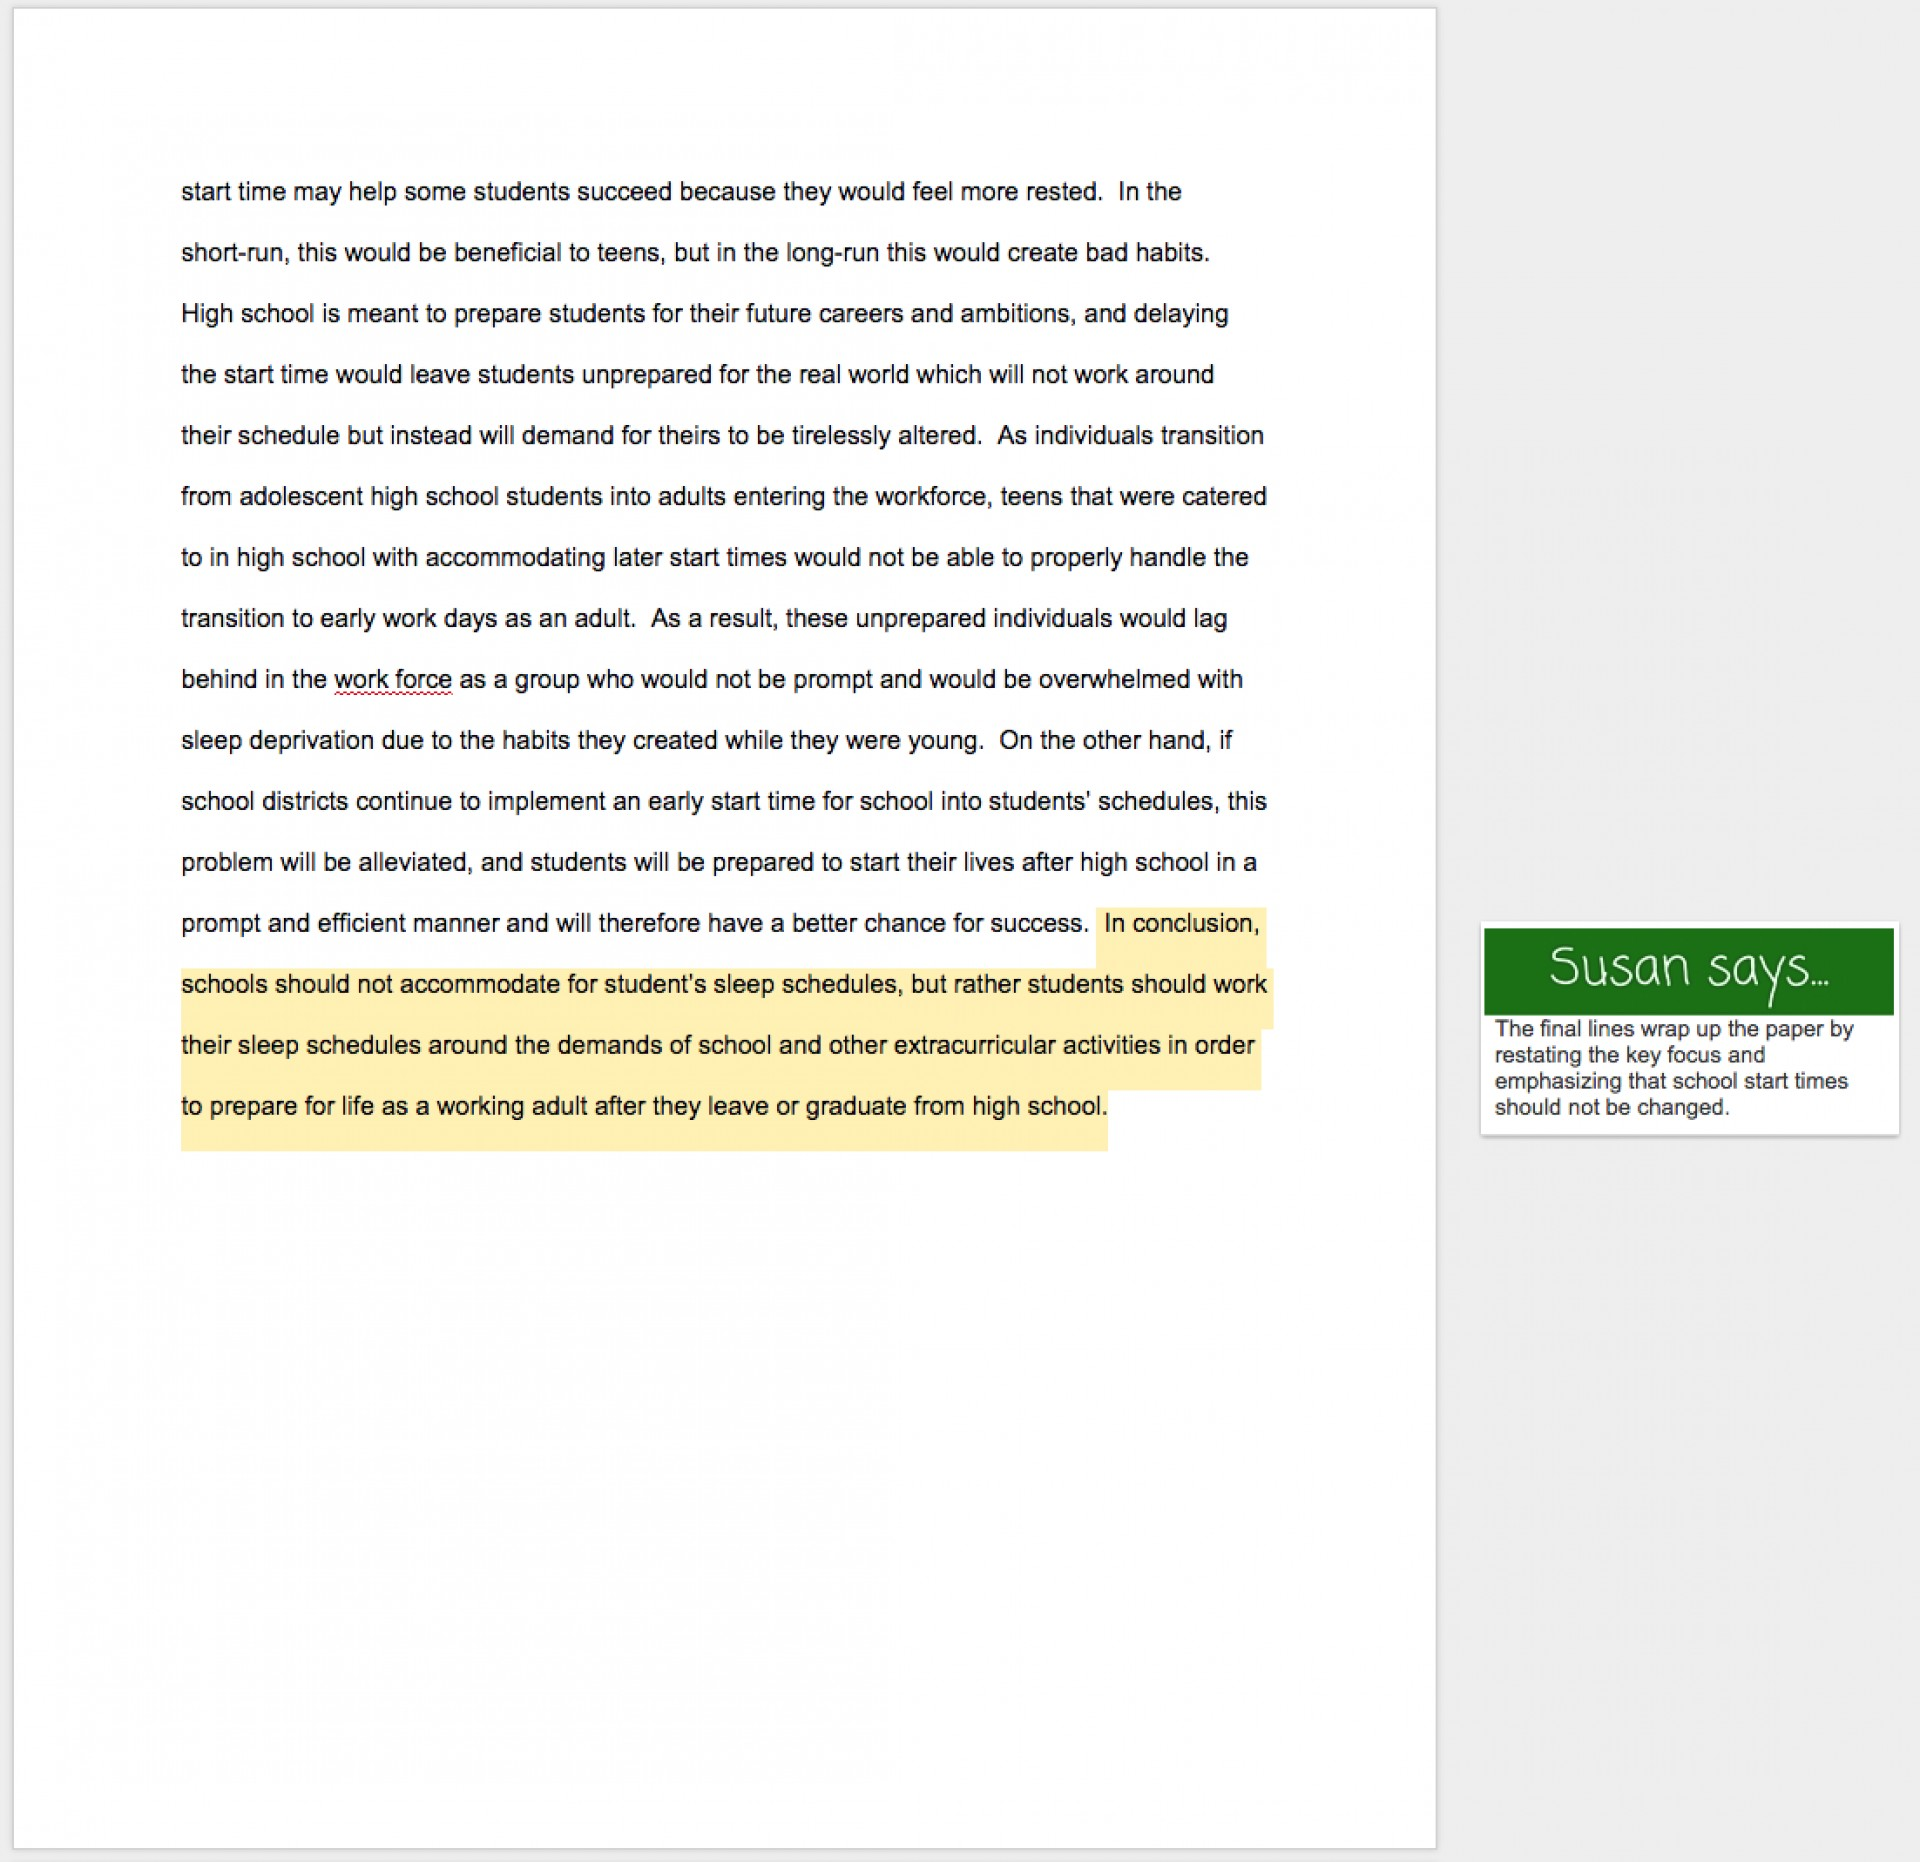 010 Essay Example Of Argumentative Beautiful Conclusion Introduction Body And 1920